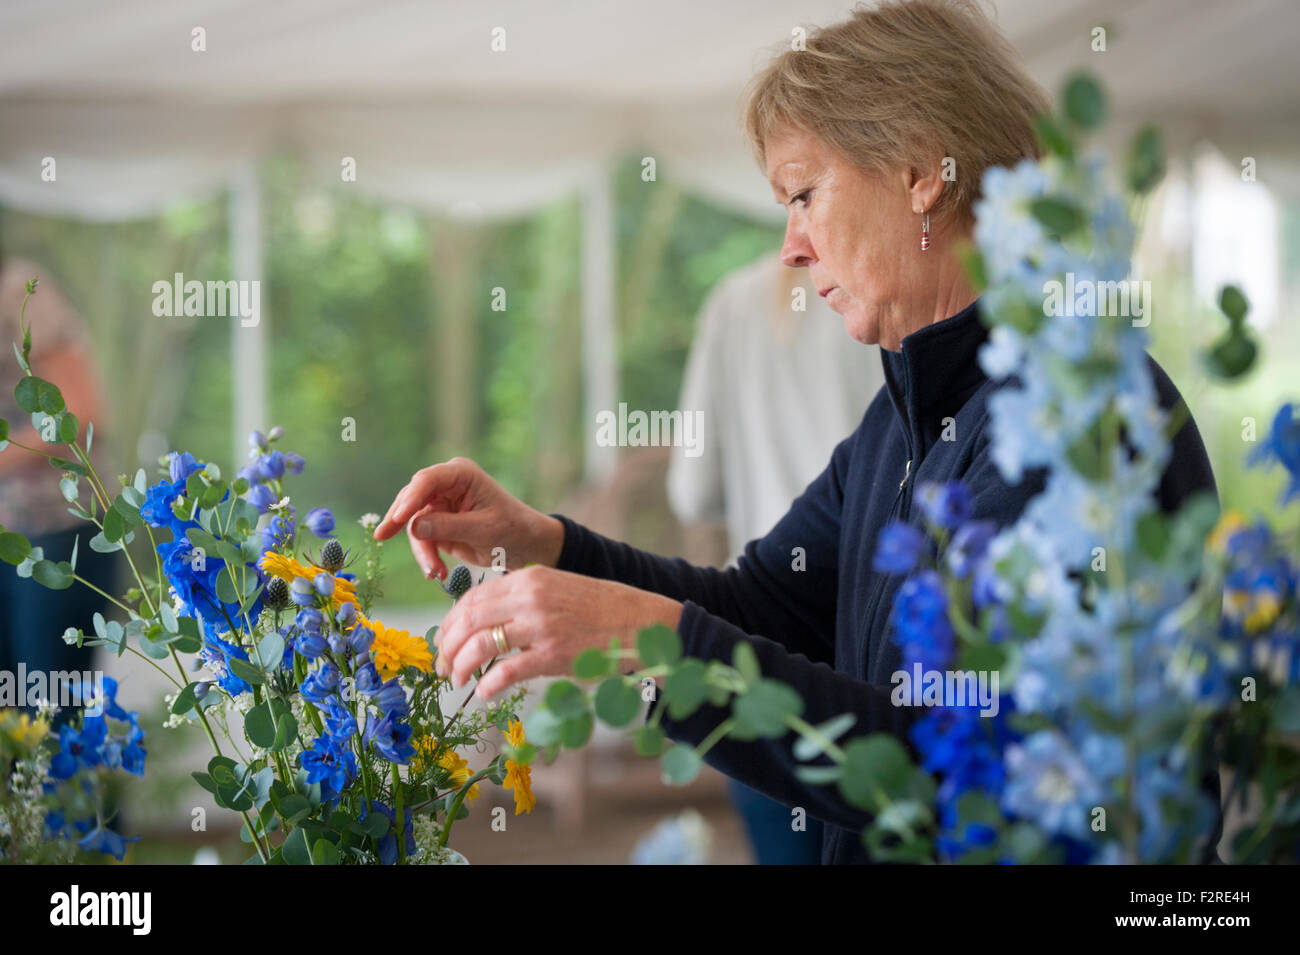 A mature woman arranging flowers Photo Stock